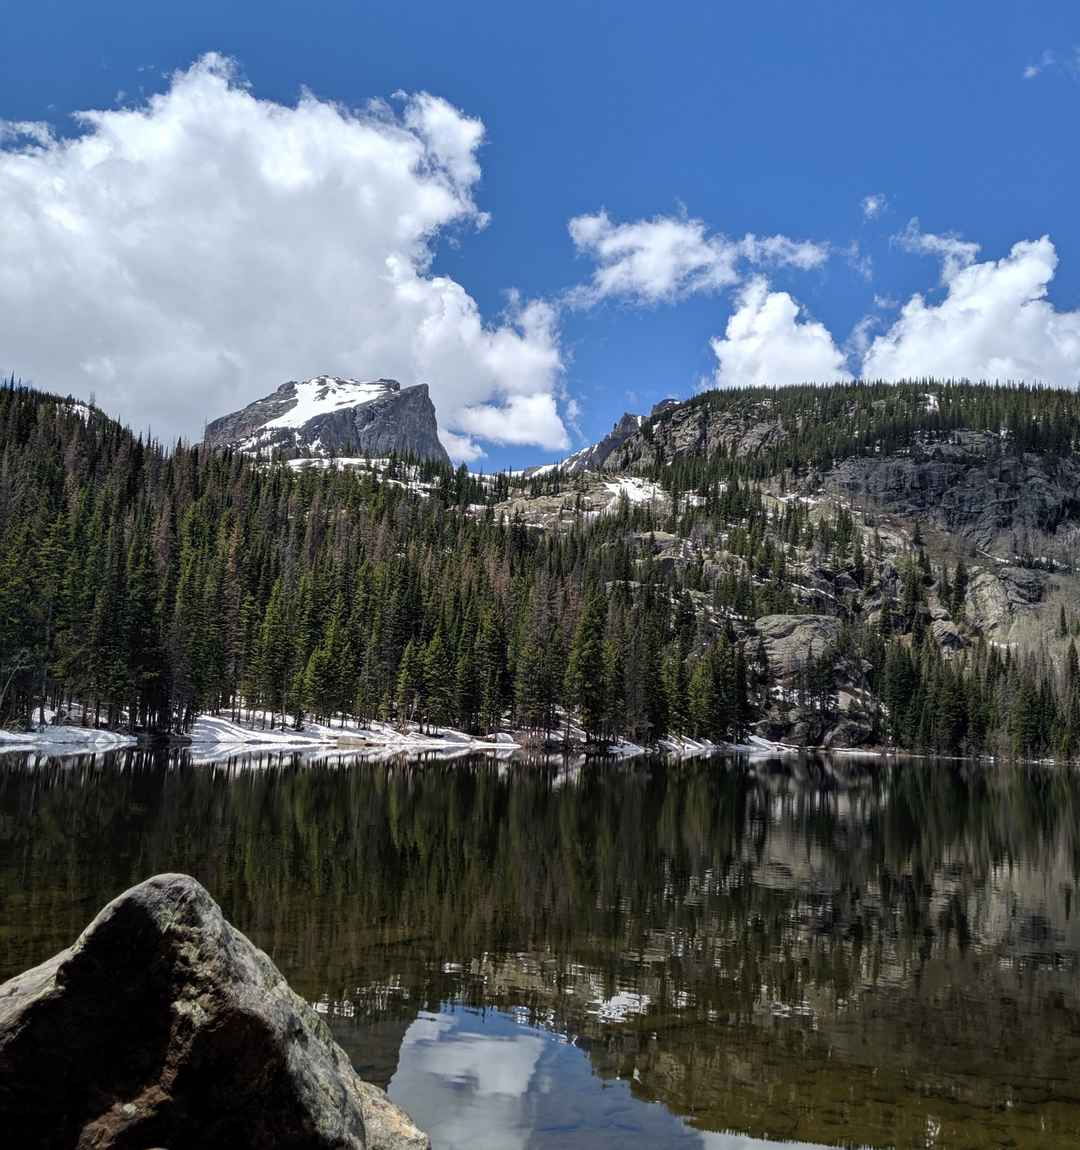 A Day Trek forever etched in my Memories - The Rocky Mountain National Park #DayTrekWonders